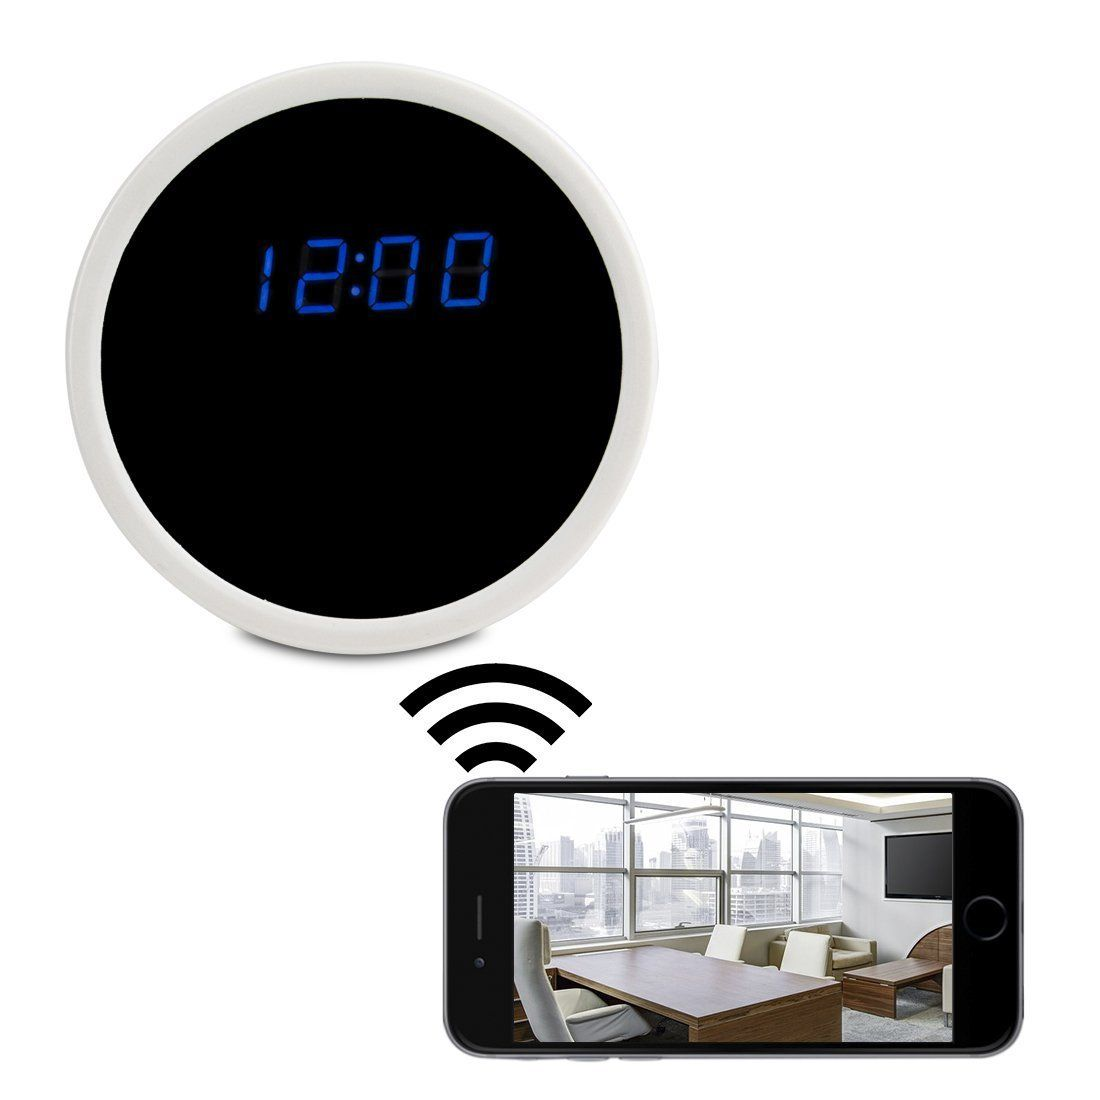 Orsda HD 1080P WiFi Mini Hidden Camera Alarm Clock 24hours Record Time Motion Activated Camcorder Video Recorder by iPhone iPad Android Phone and PC Remote